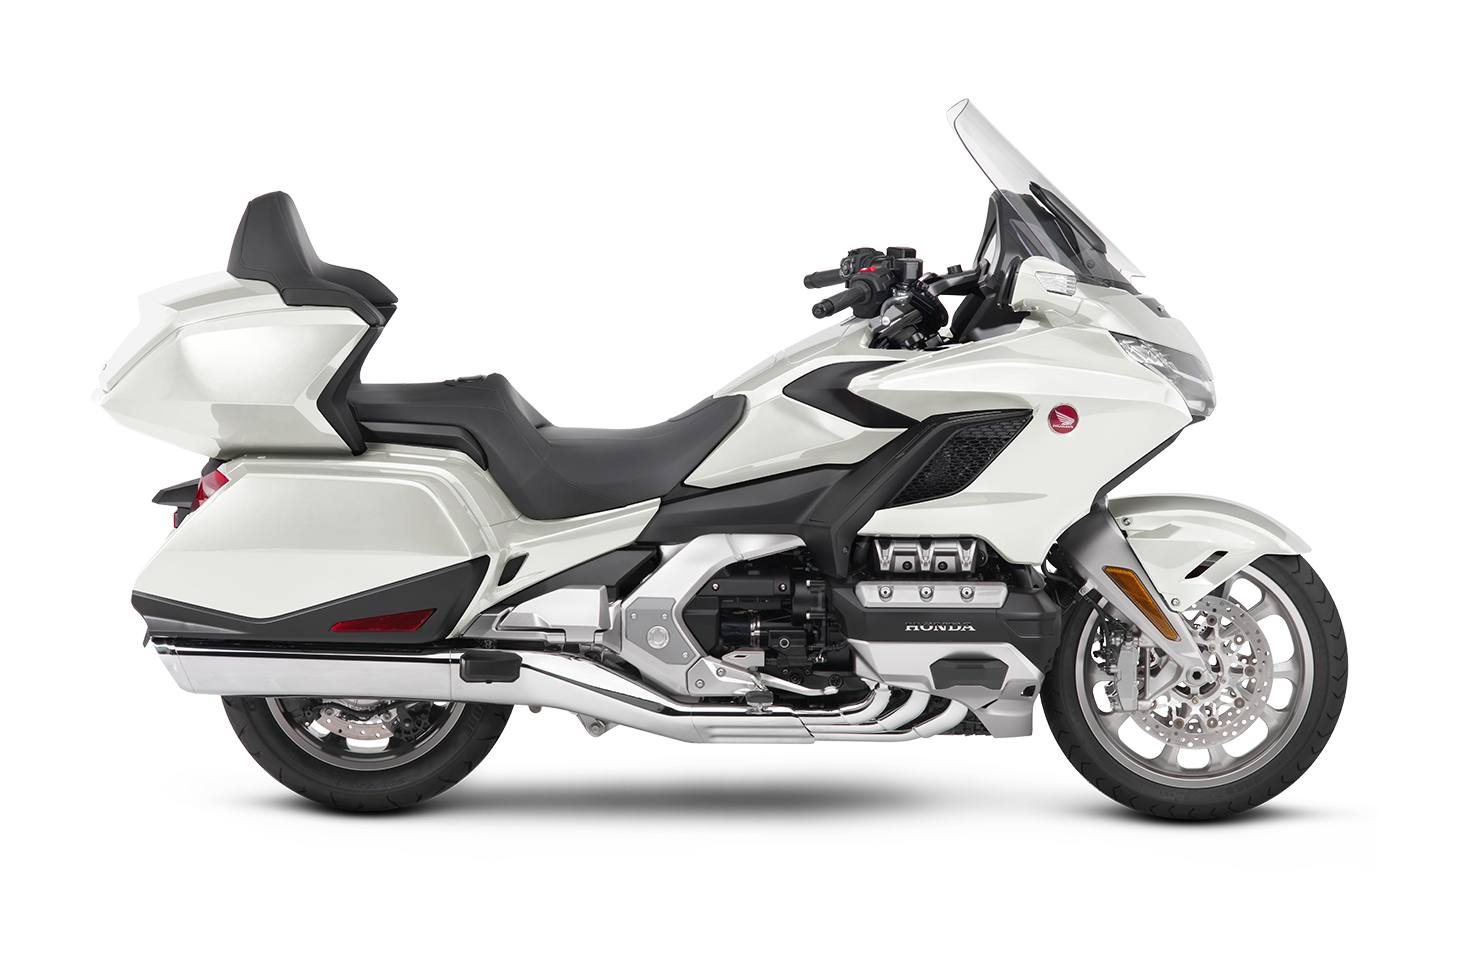 2018 Honda Gold Wing Tour Pearl White For Sale In Vancouver Wa Gl1800 Goldwing Seat Heat Wiring Diagram